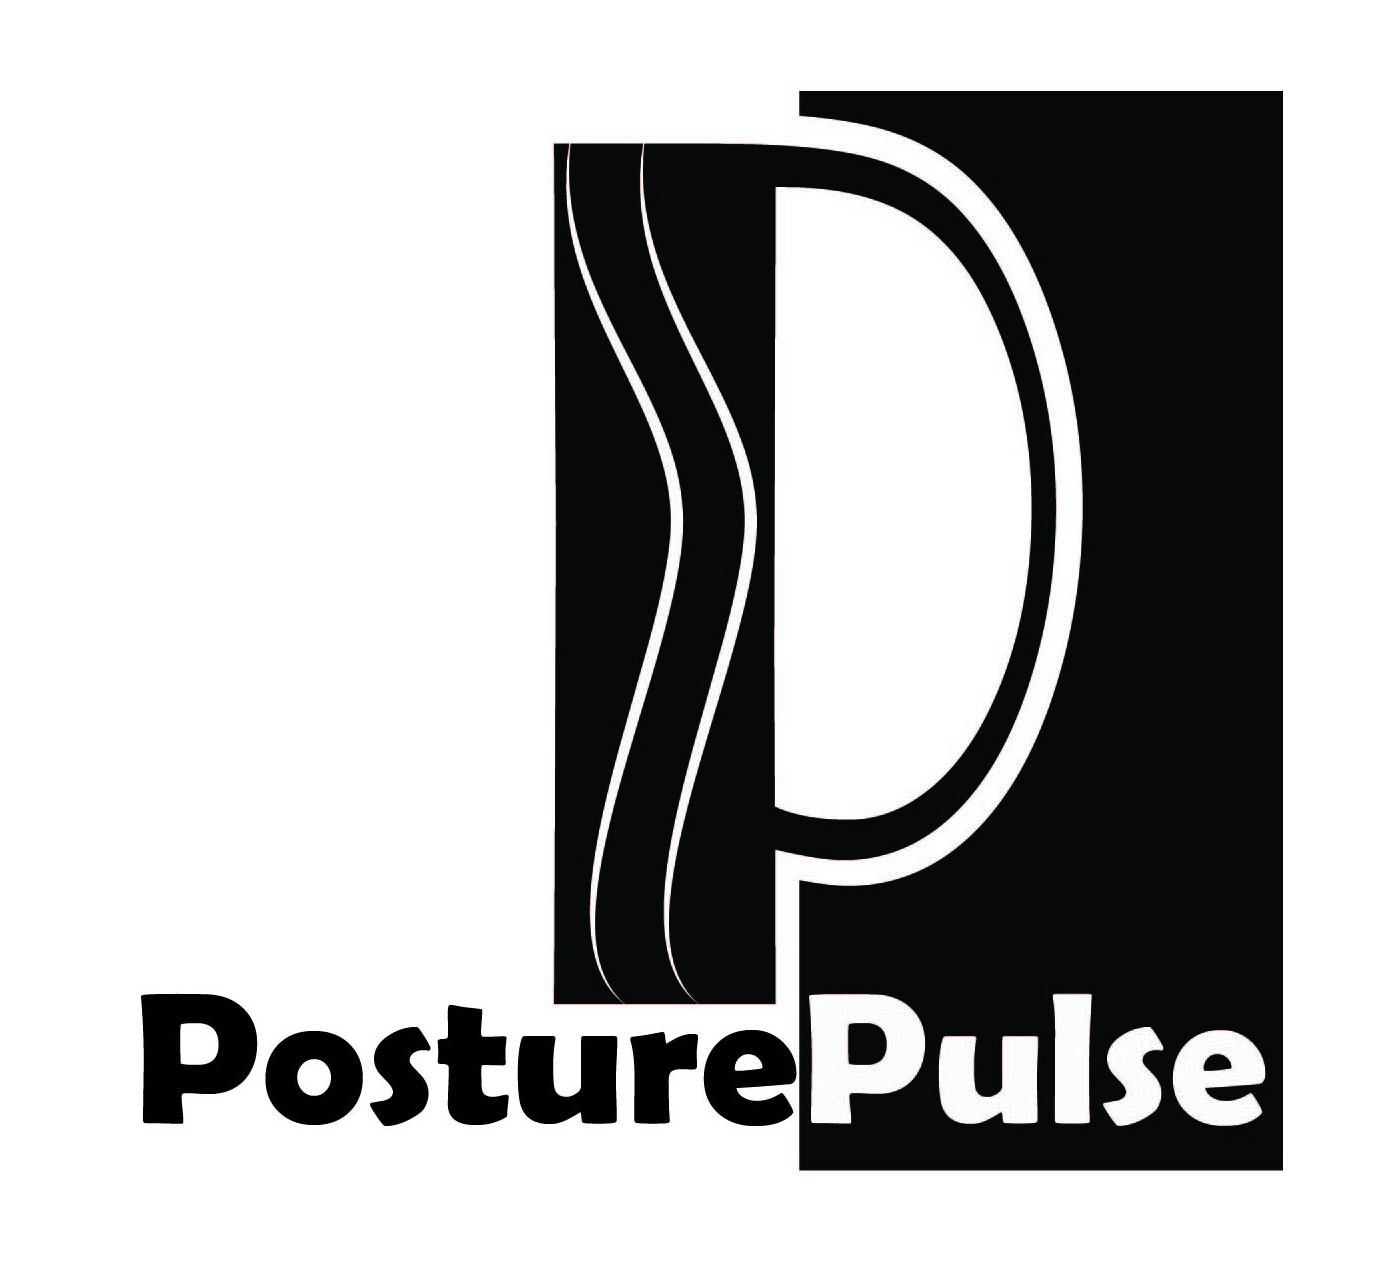 Logo Design by Susan Palmer - Entry No. 70 in the Logo Design Contest Unique Logo Design Wanted for PosturePulse.